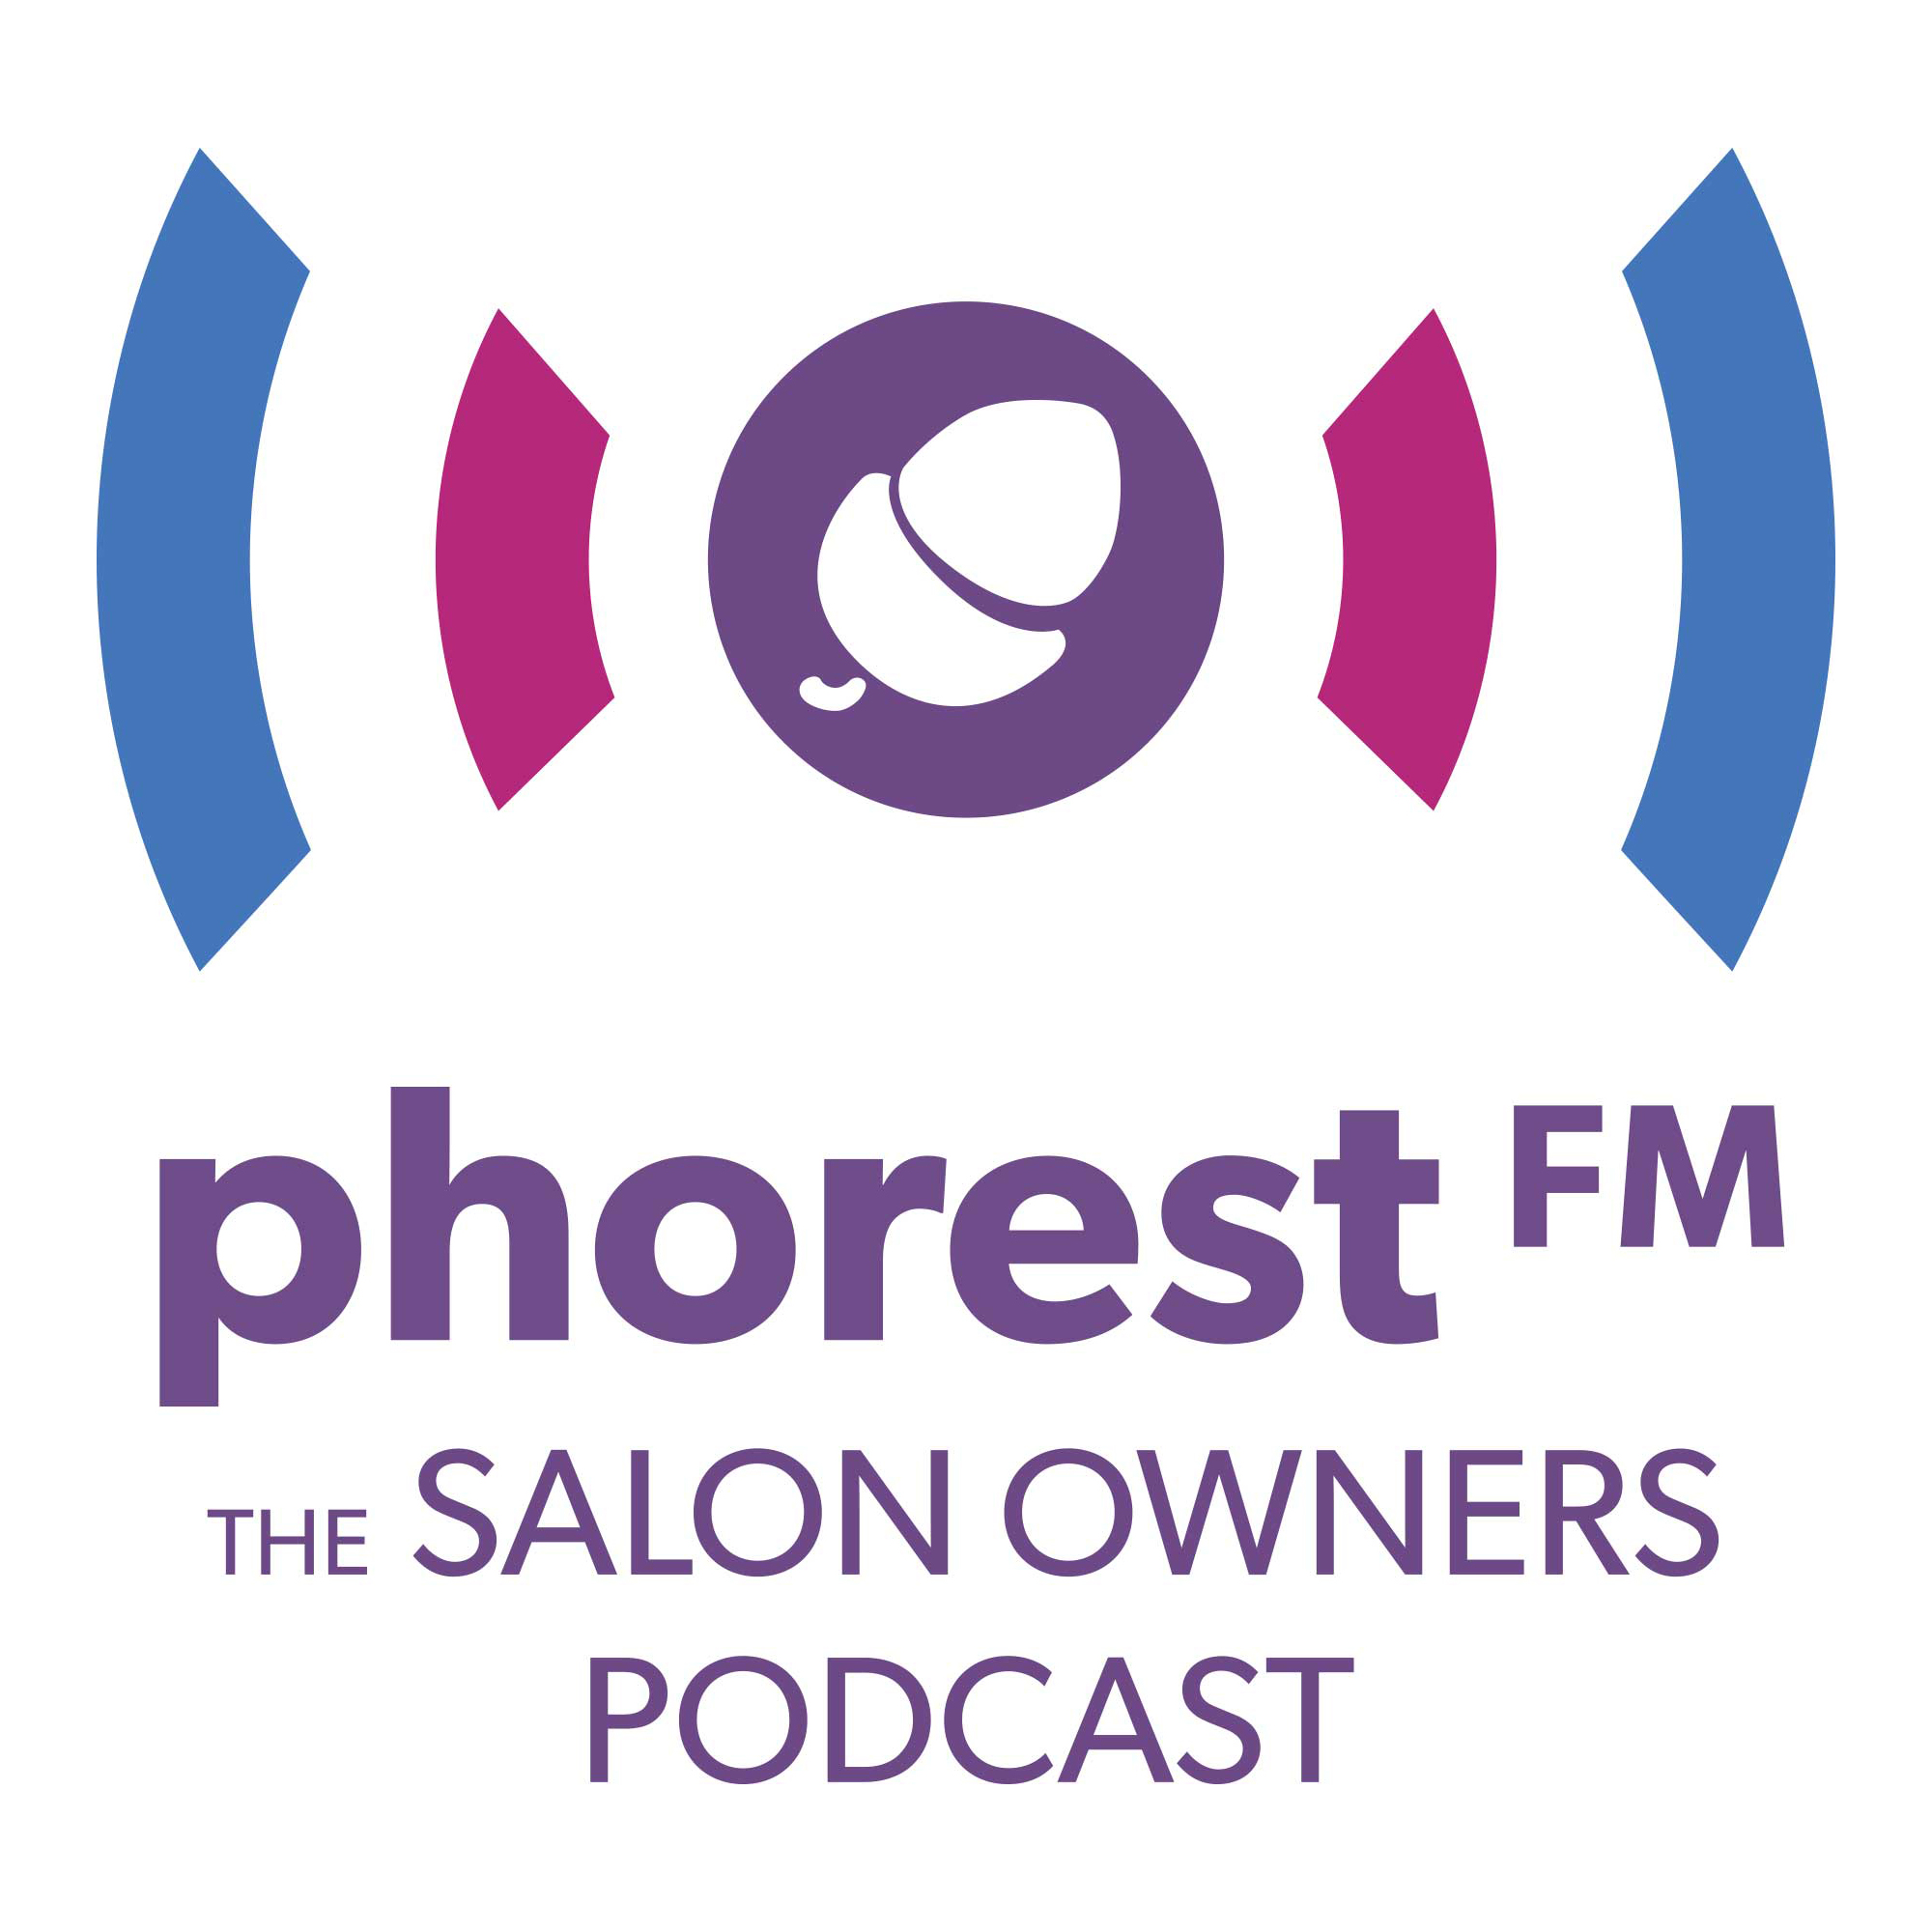 Phorest fm 074 30days2grow special interview with katrina sutherland fandeluxe Images